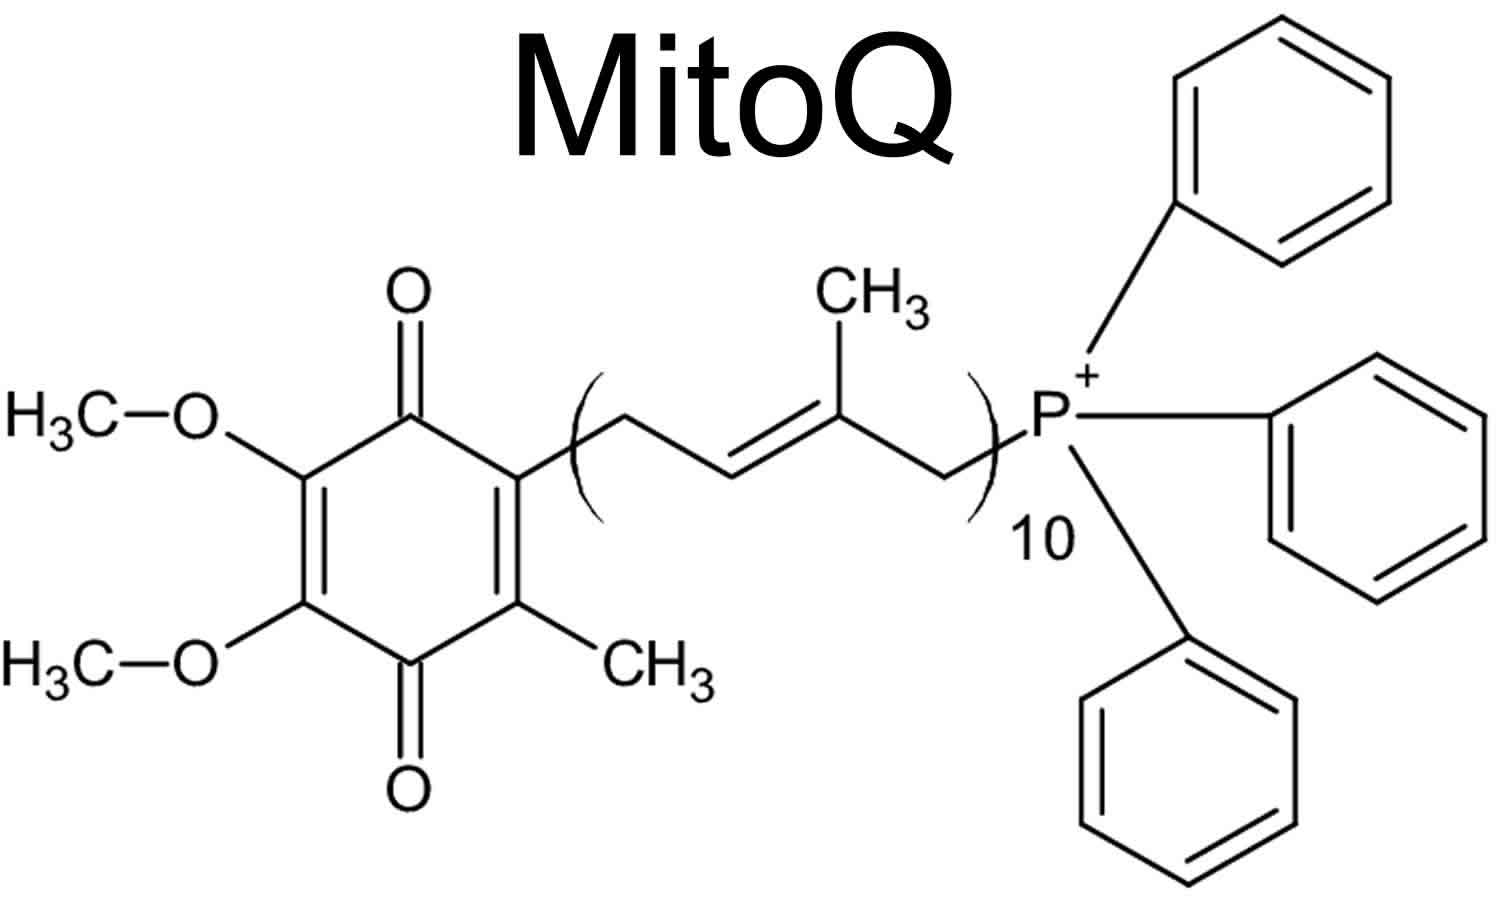 MitoQ chemical structure